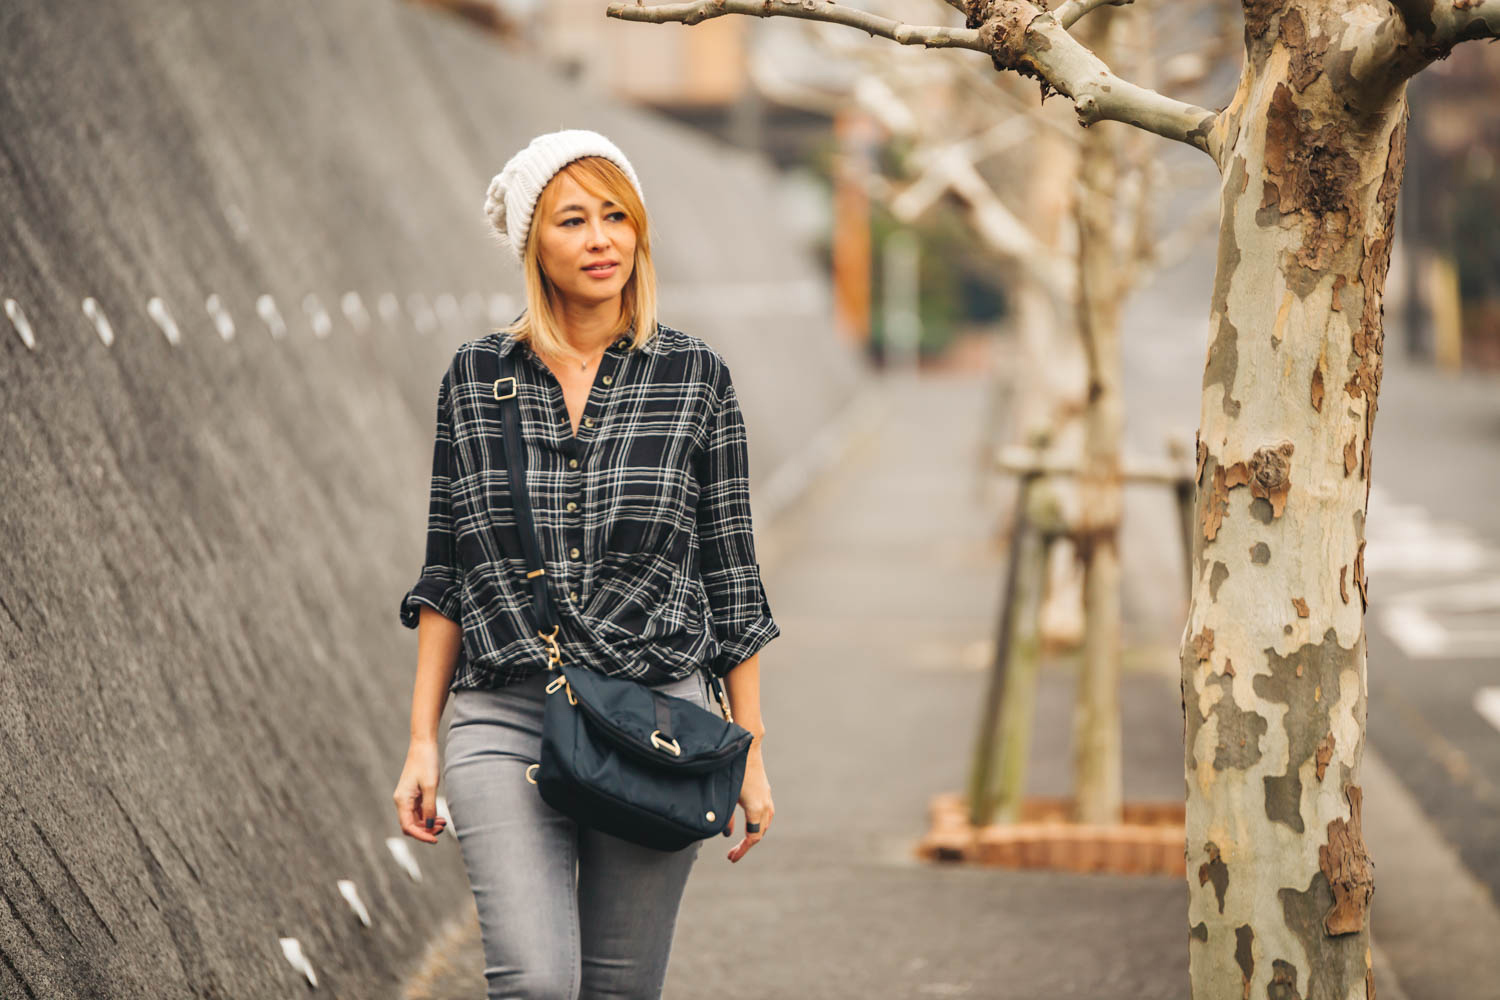 Wearing the  Citysafe CX anti-theft convertible backpack  As A Crossbody Purse